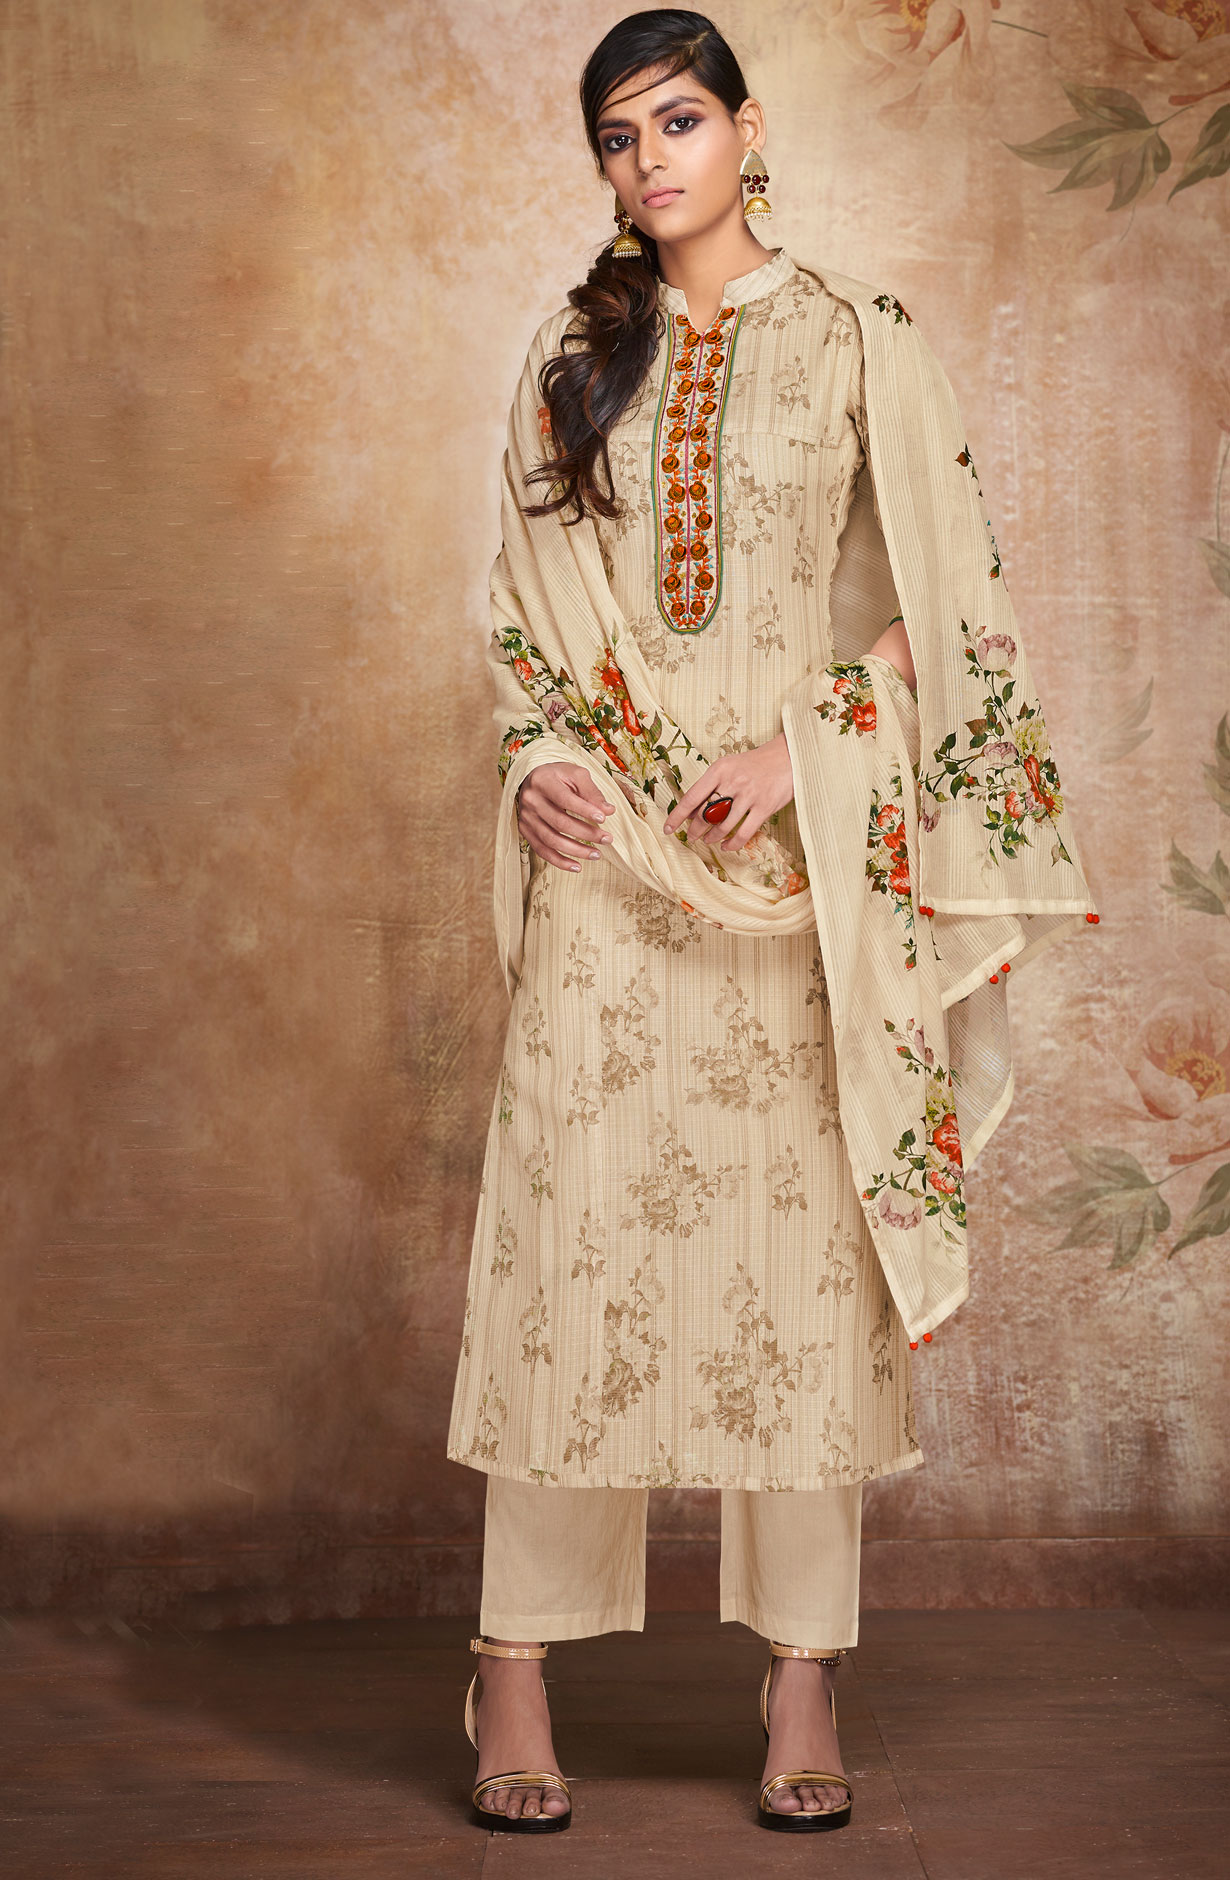 b4651f01644 Kota Cotton Beige Floral Print with Embroidery Suit Sets